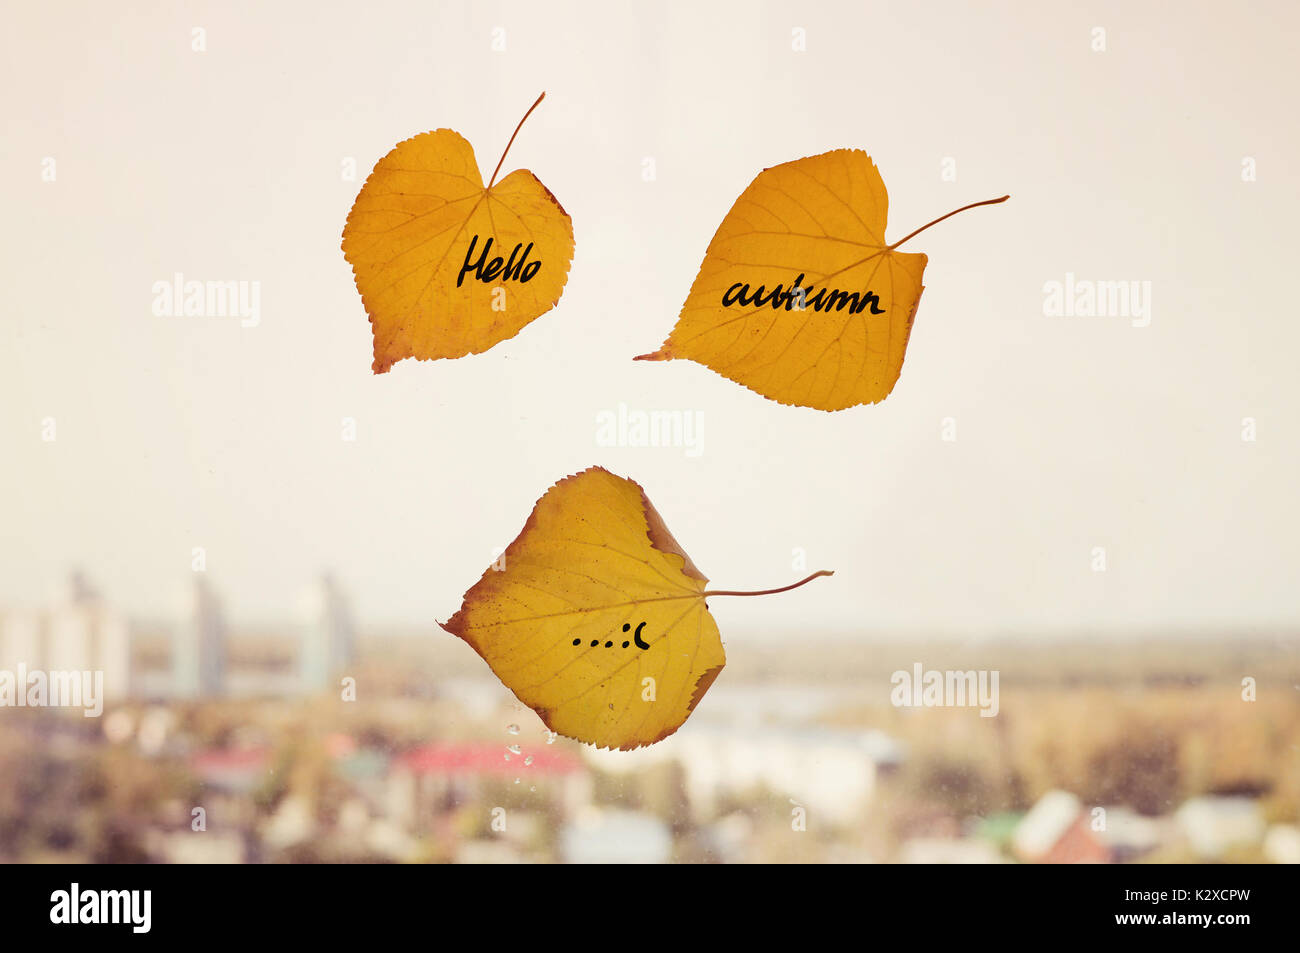 Yellow Dry Leafs With Inscription Hello Autumn Written On Them On The  Background Of Diffuse Dull